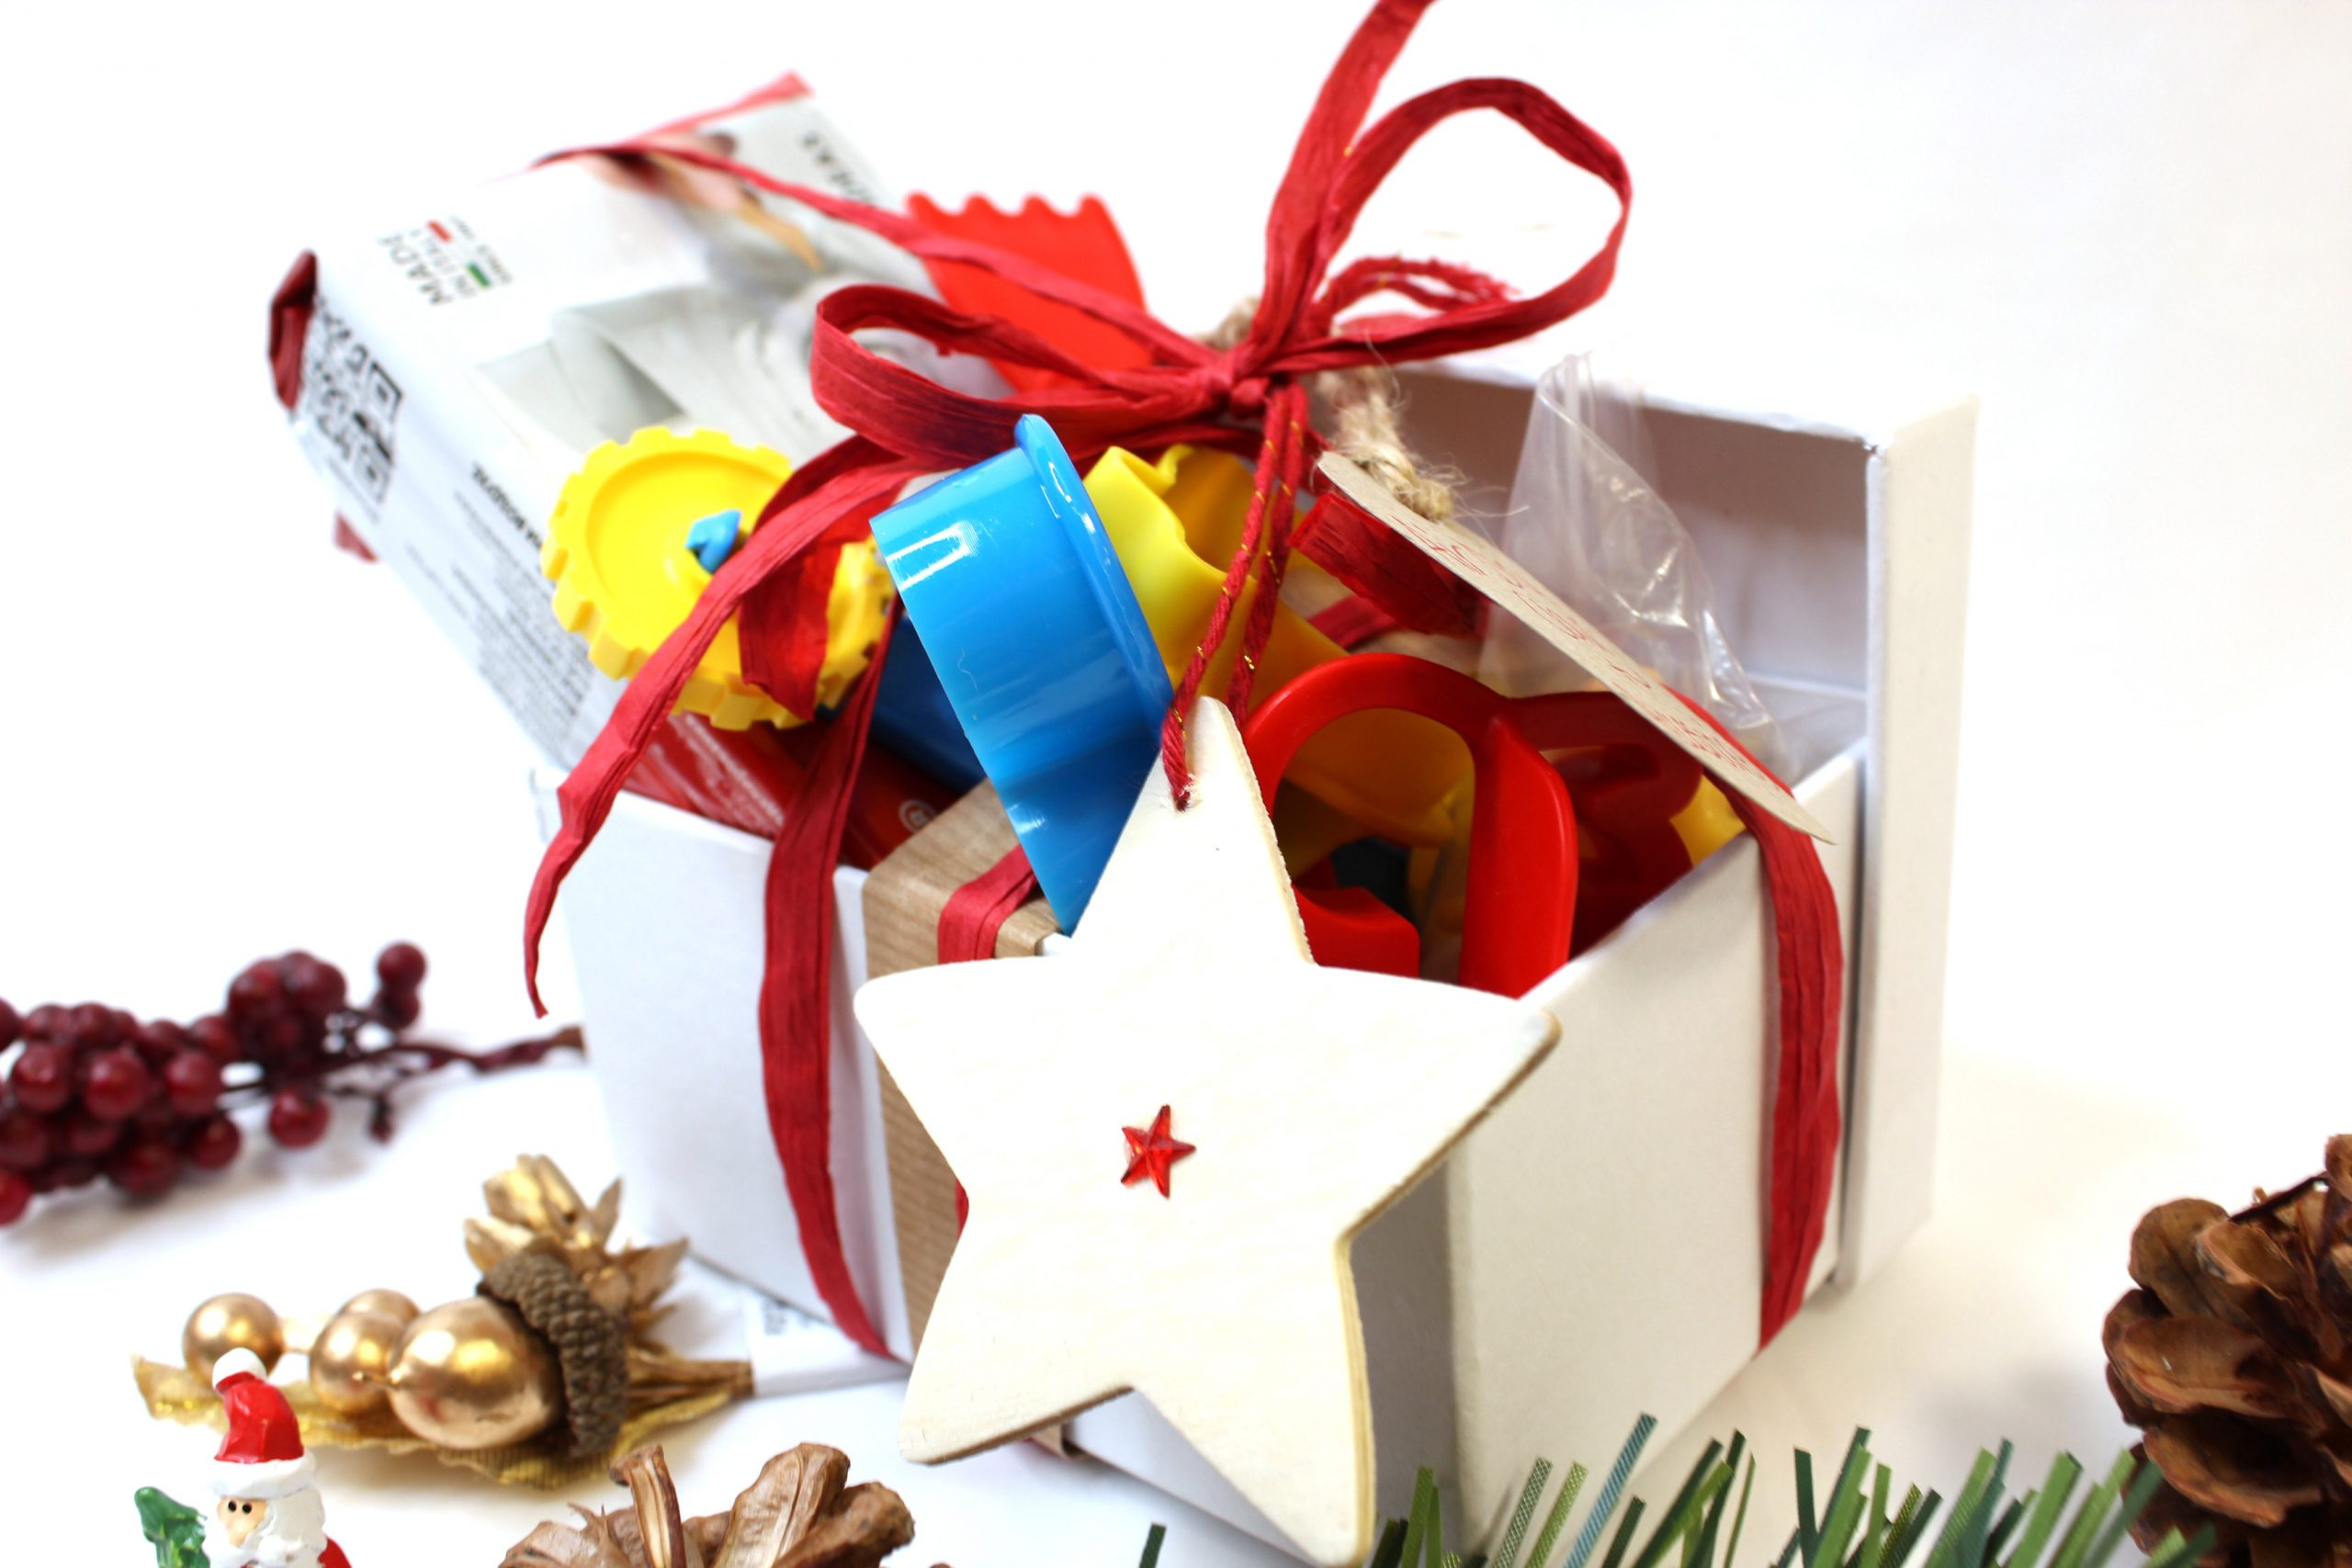 Christmas Hampers, Kits and Crafty Gifts